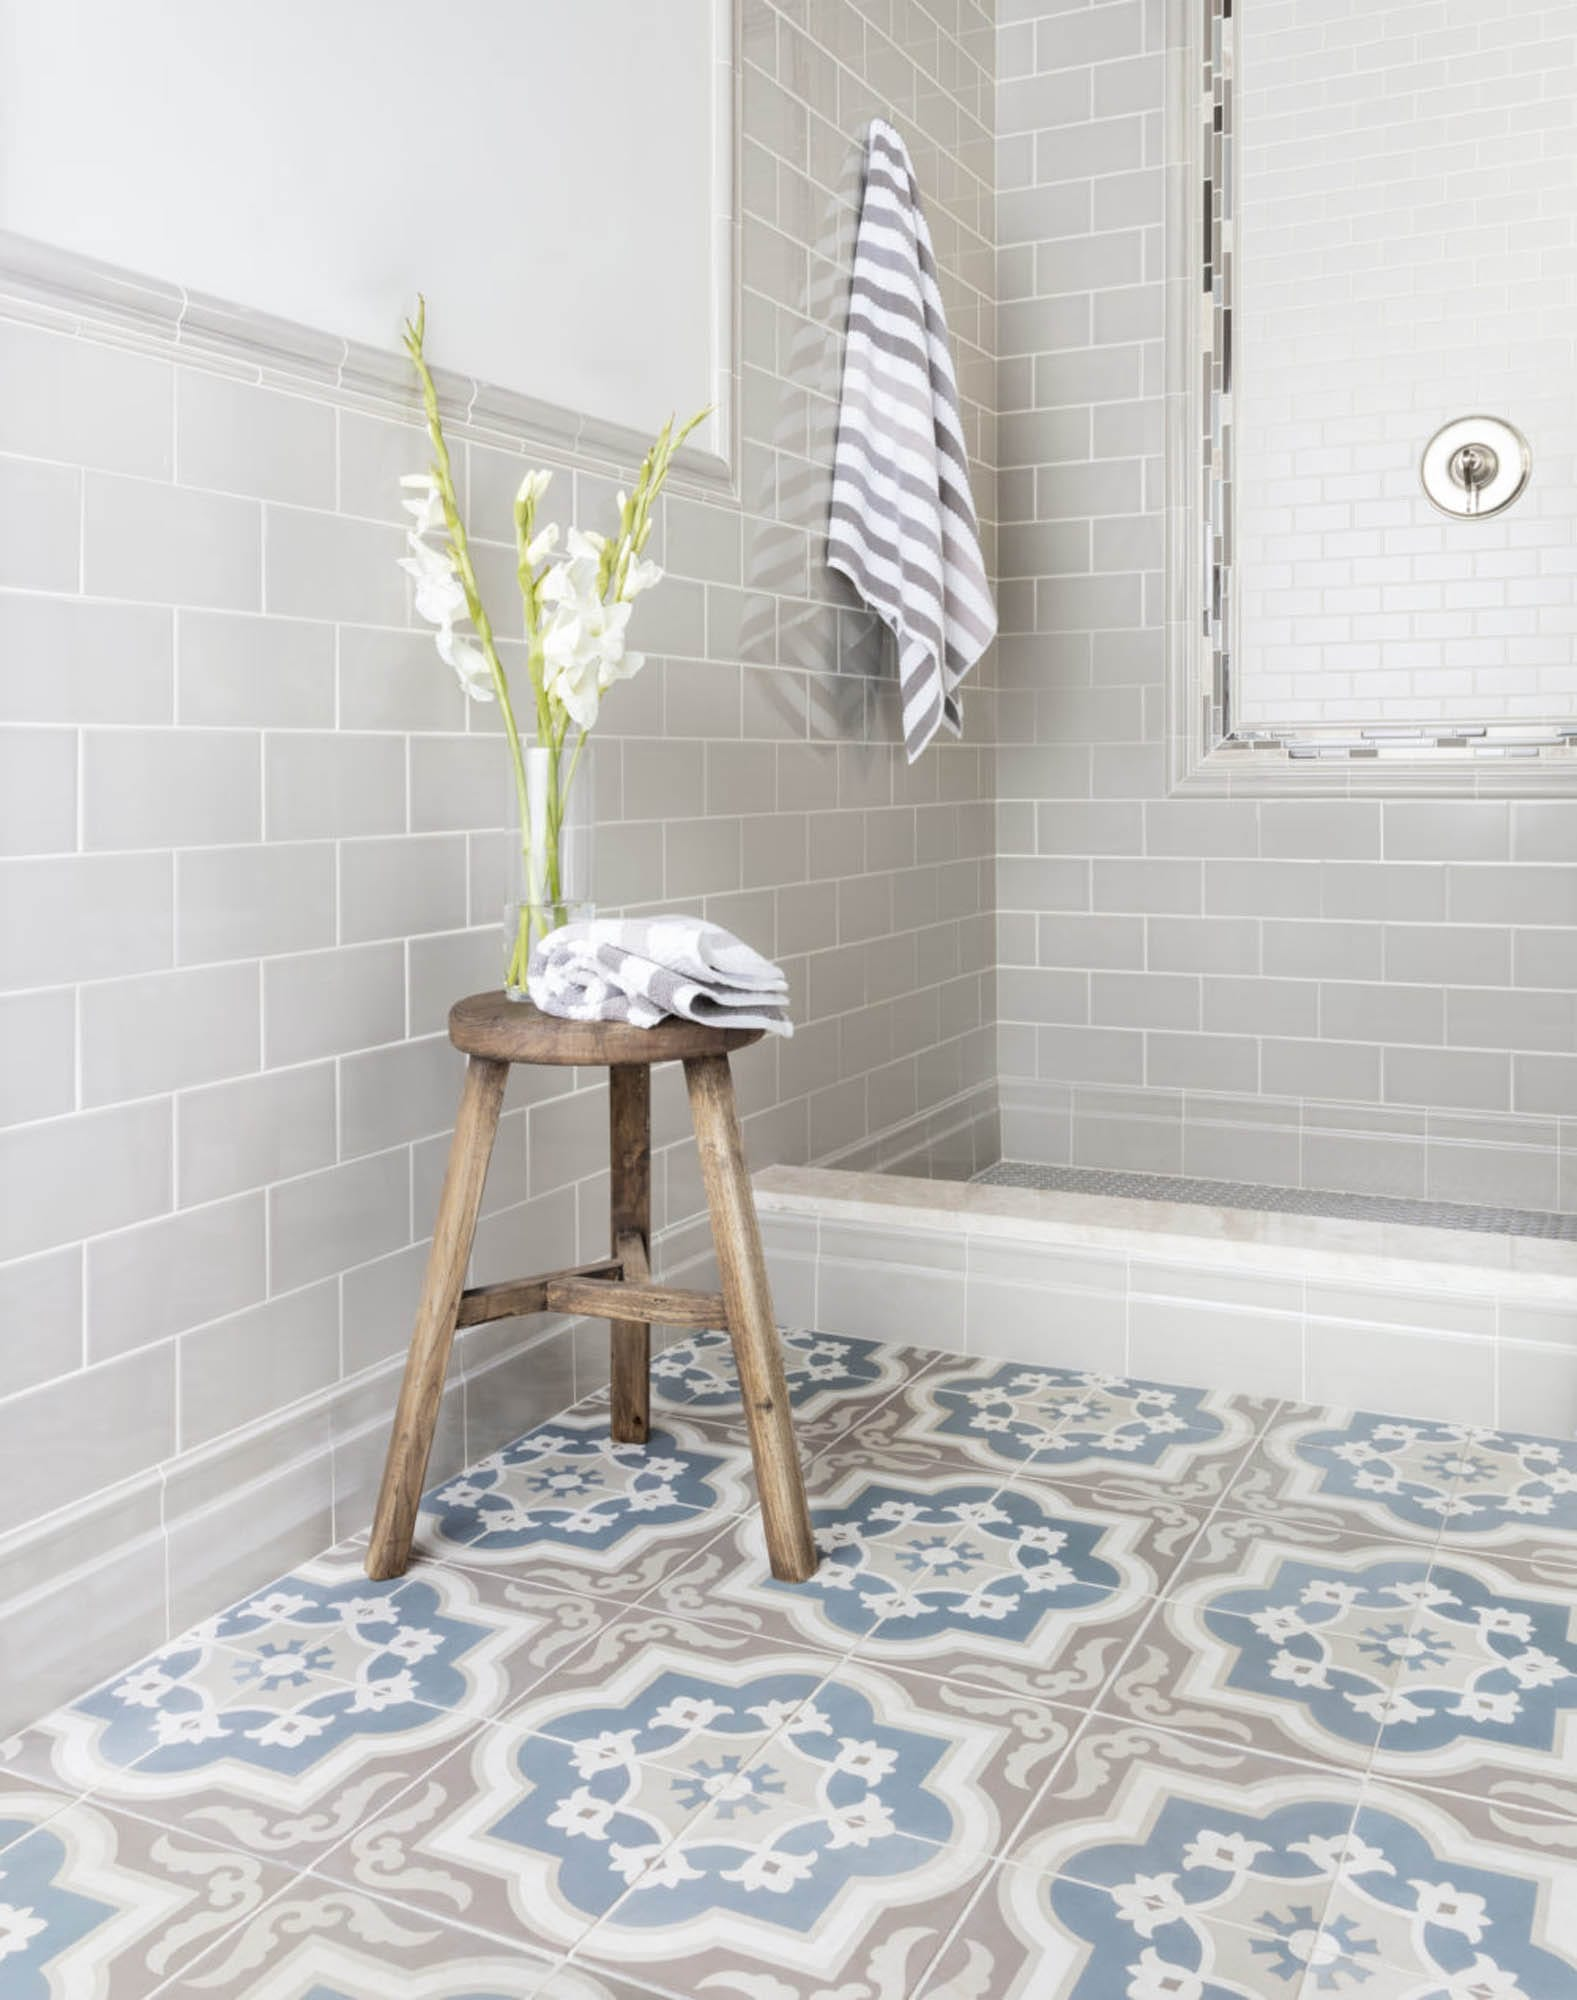 Encaustic cement bathroom floor tile